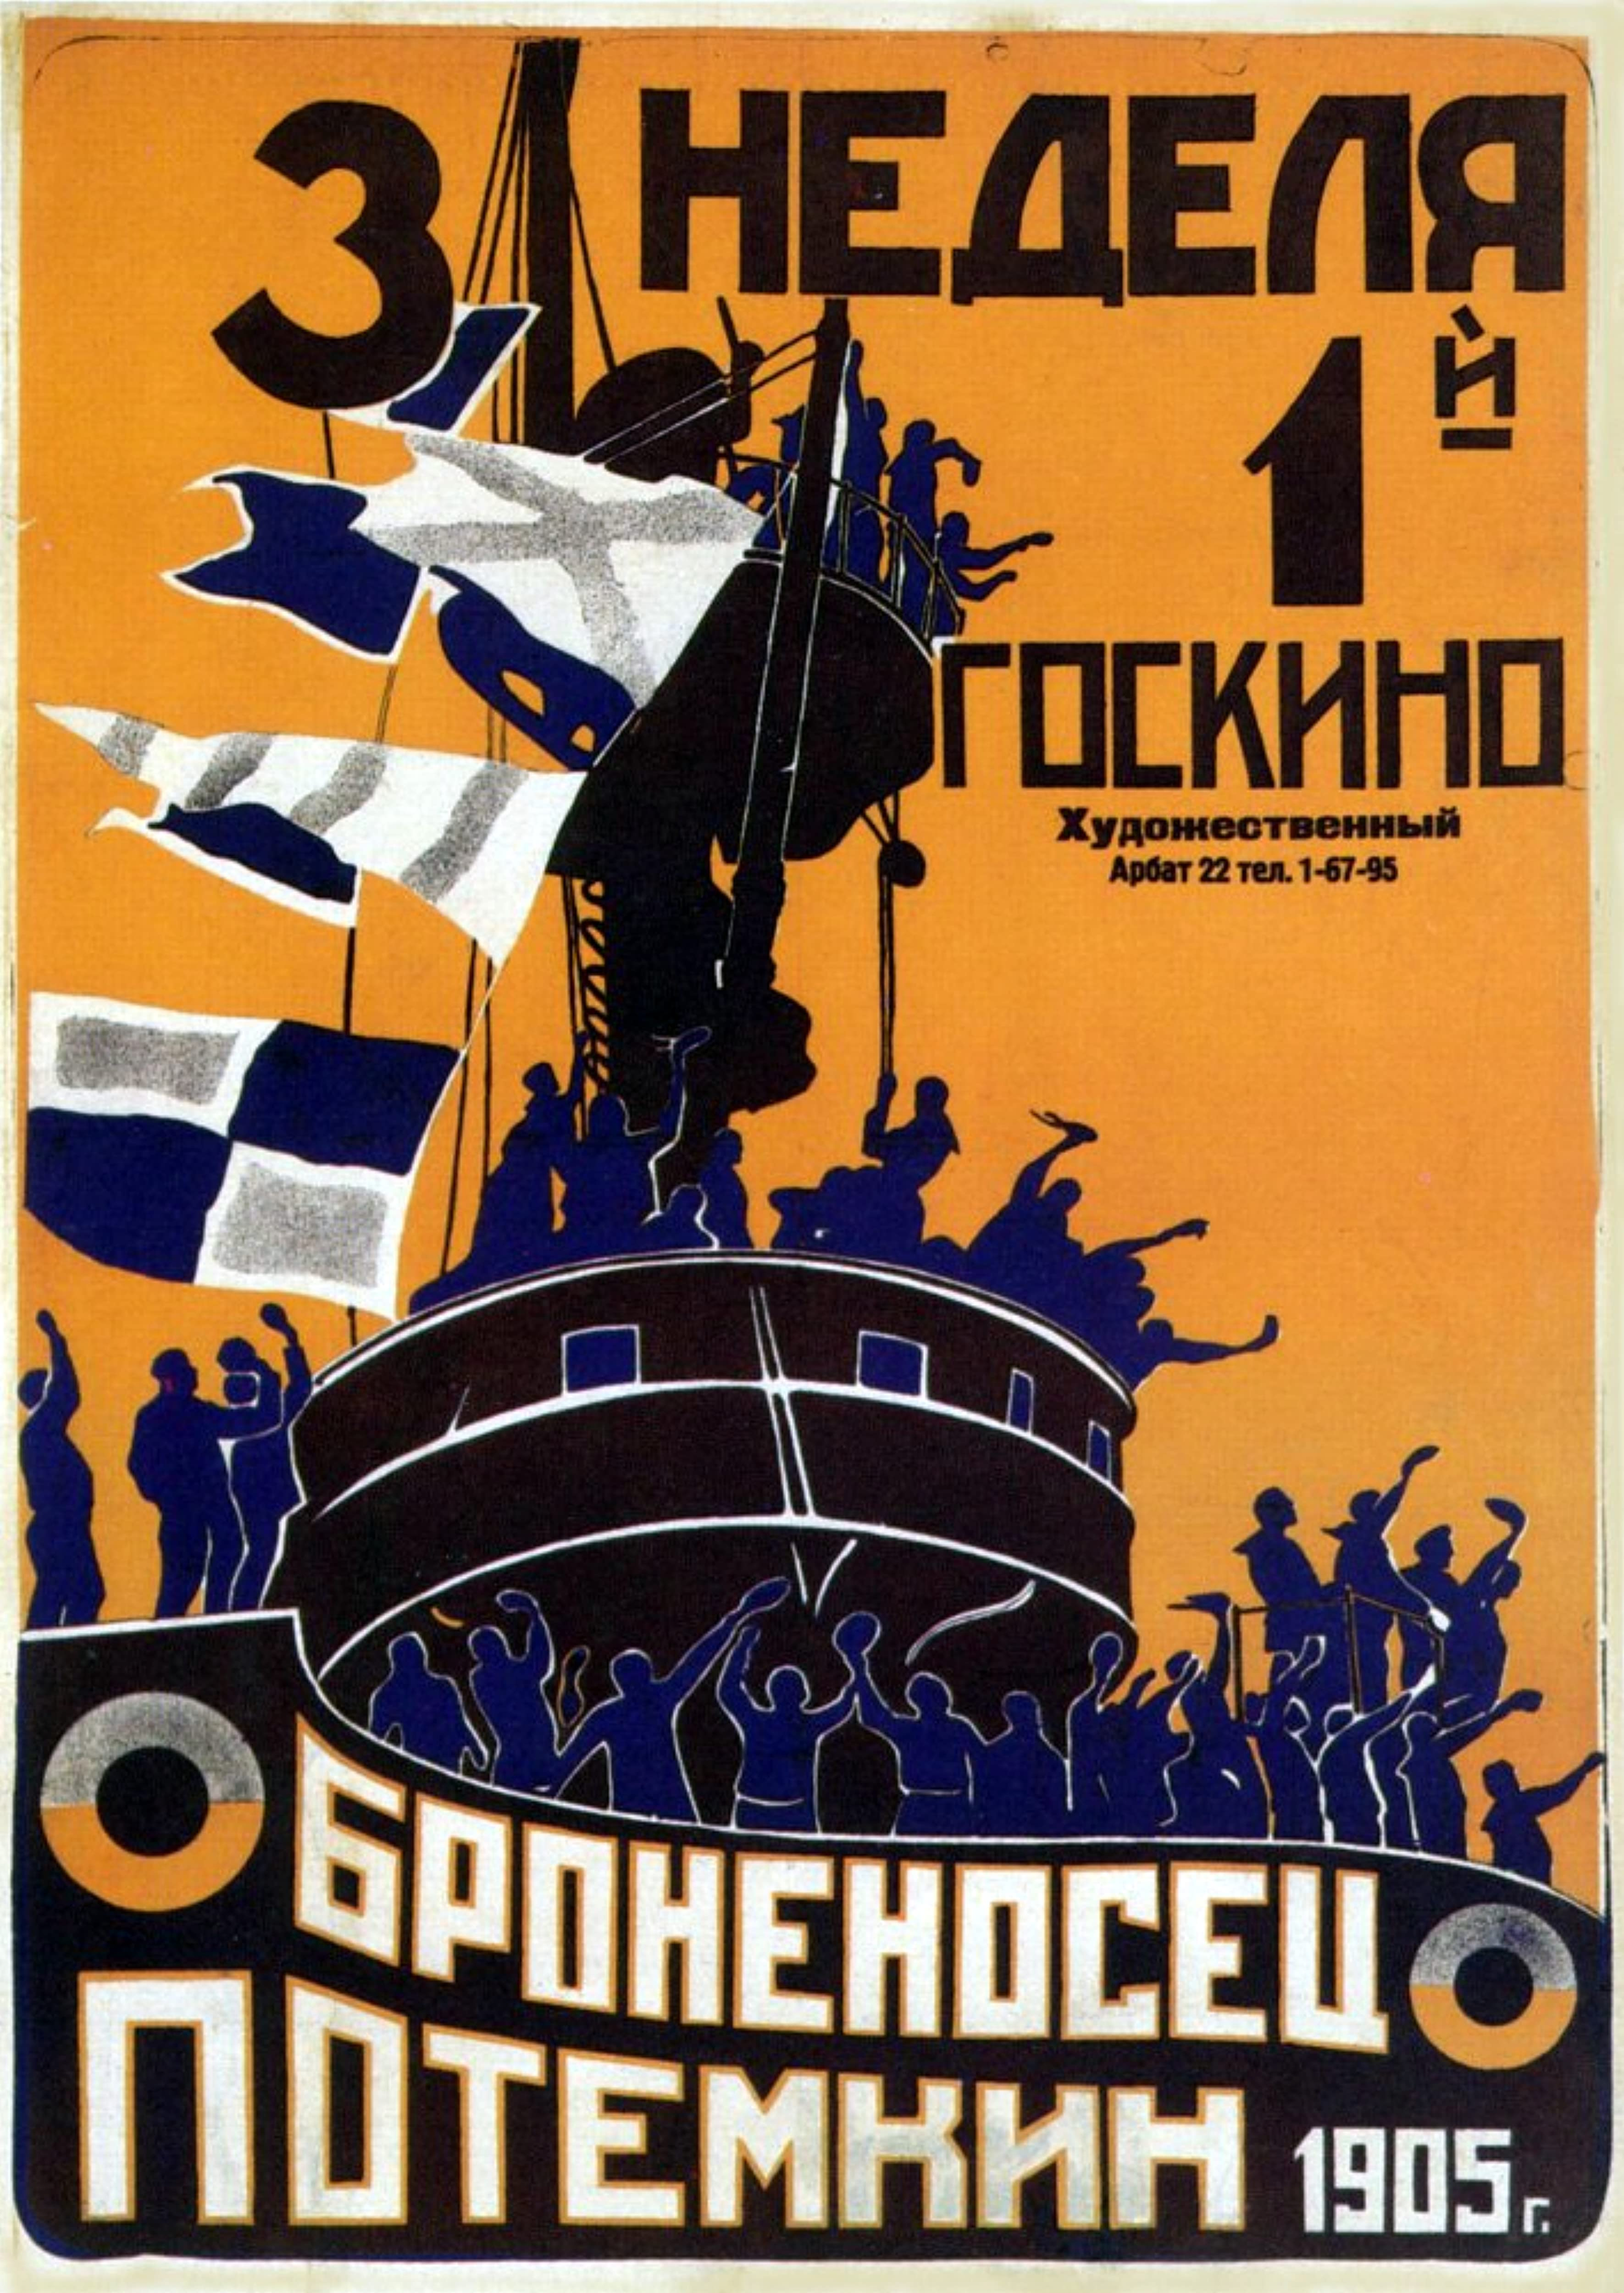 Battleship Potemkin (1925) movie poster